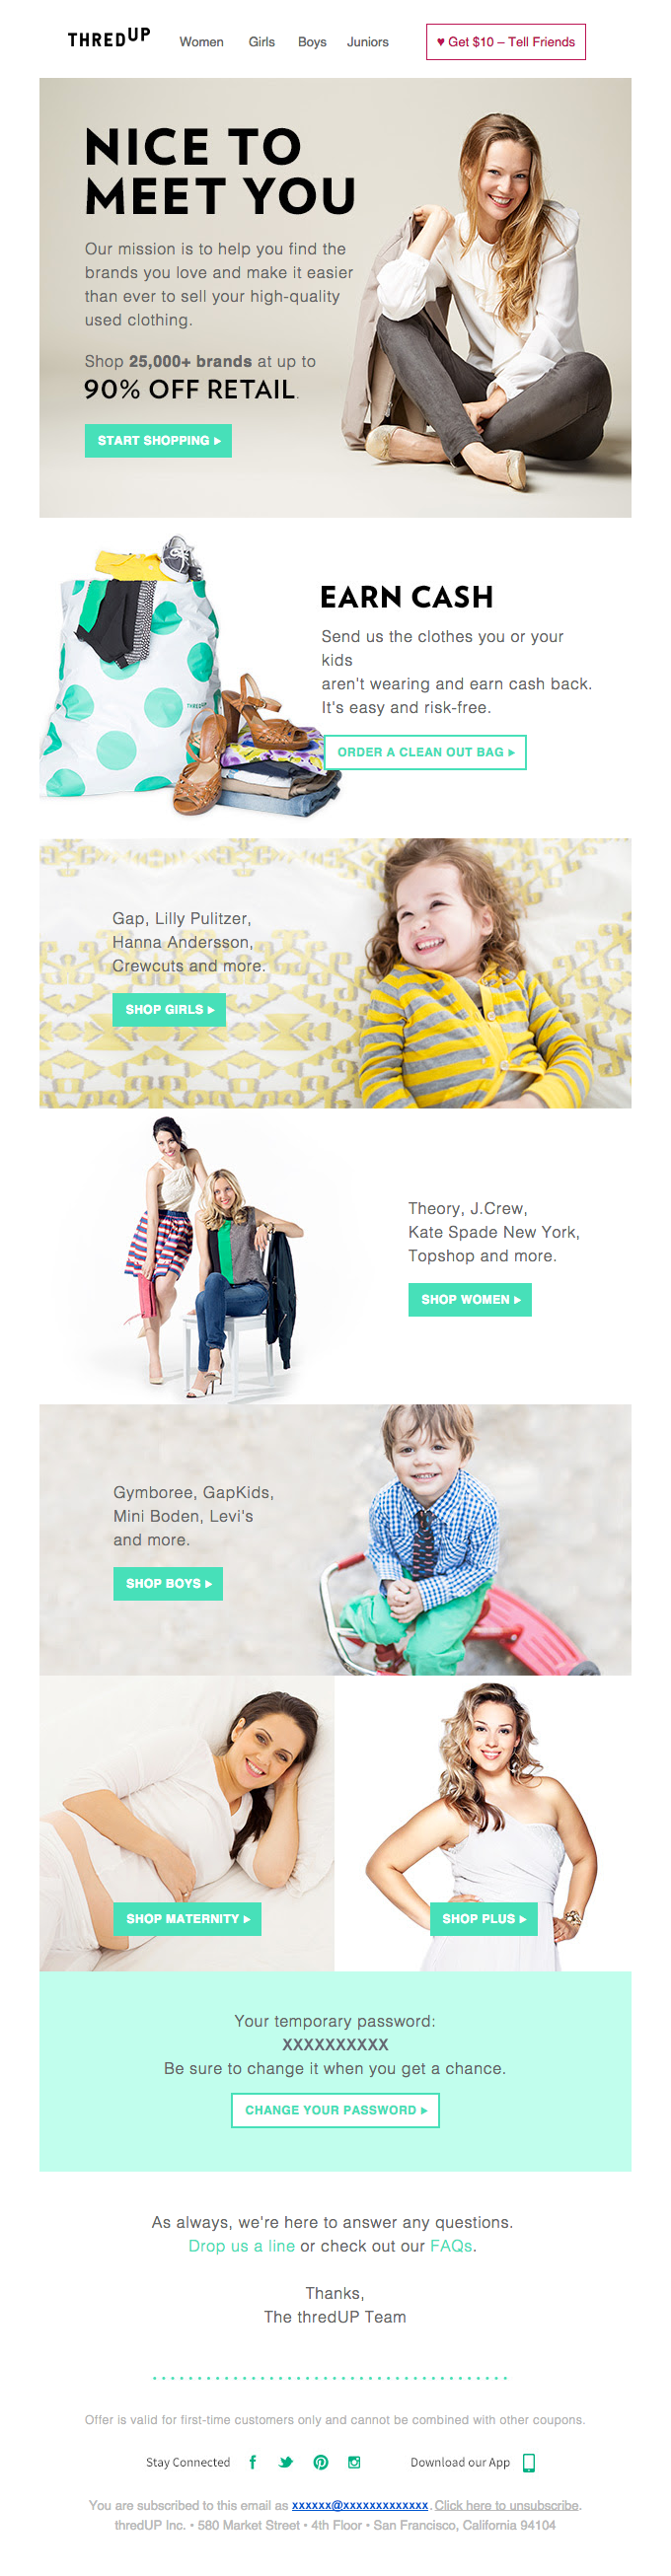 new-signup-onboarding-ecommerce-email-with-discount-from-thredup-4